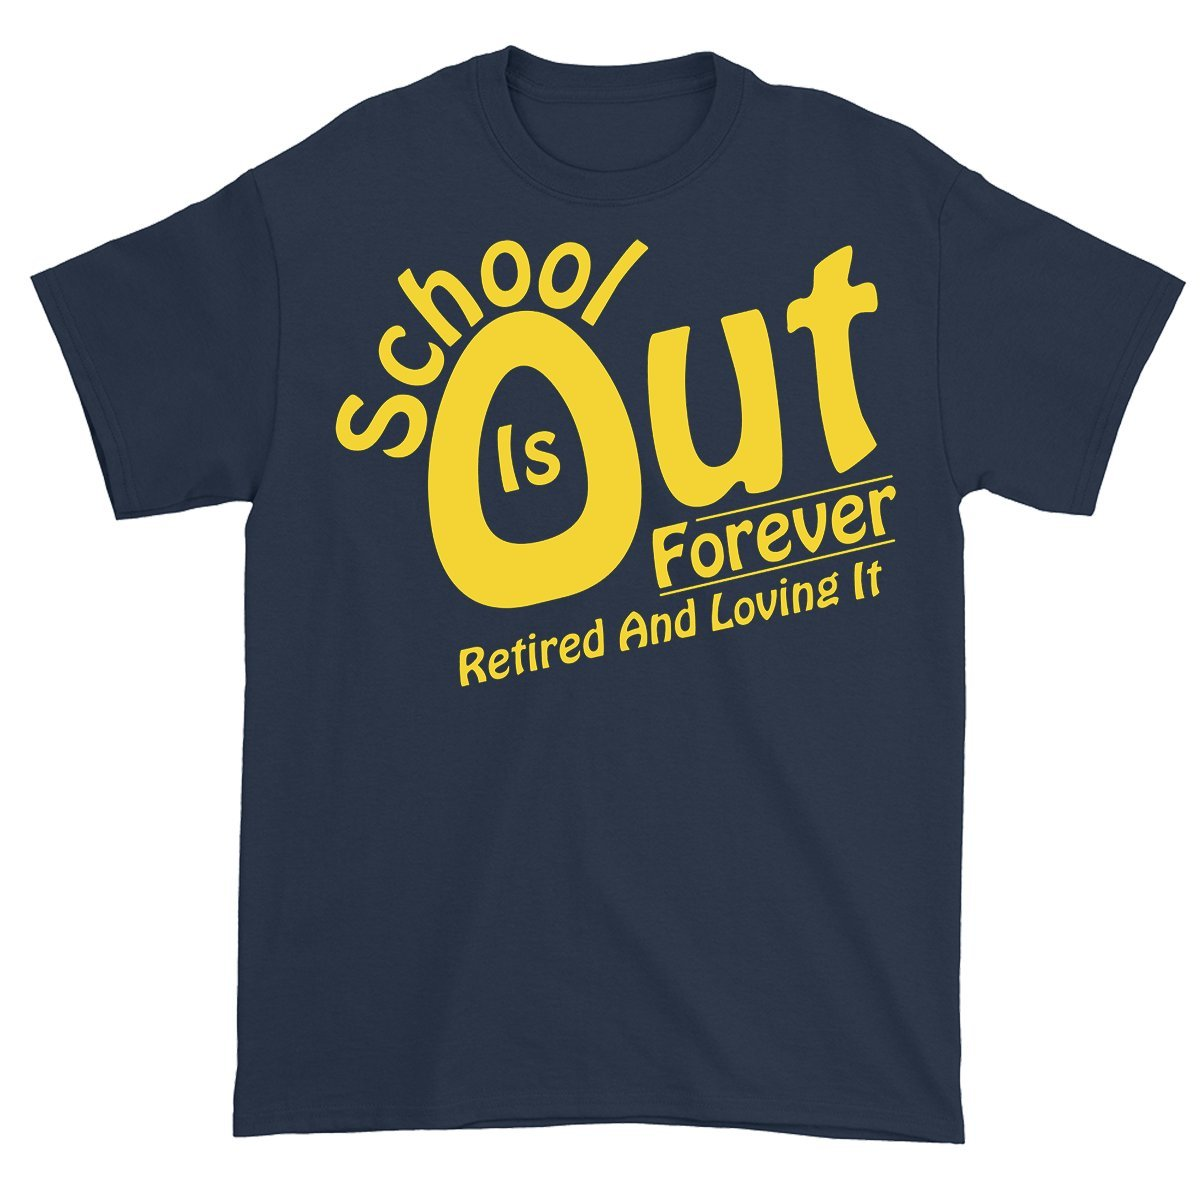 School Is Out Forever And Loving It Retiret Tea Tshirt